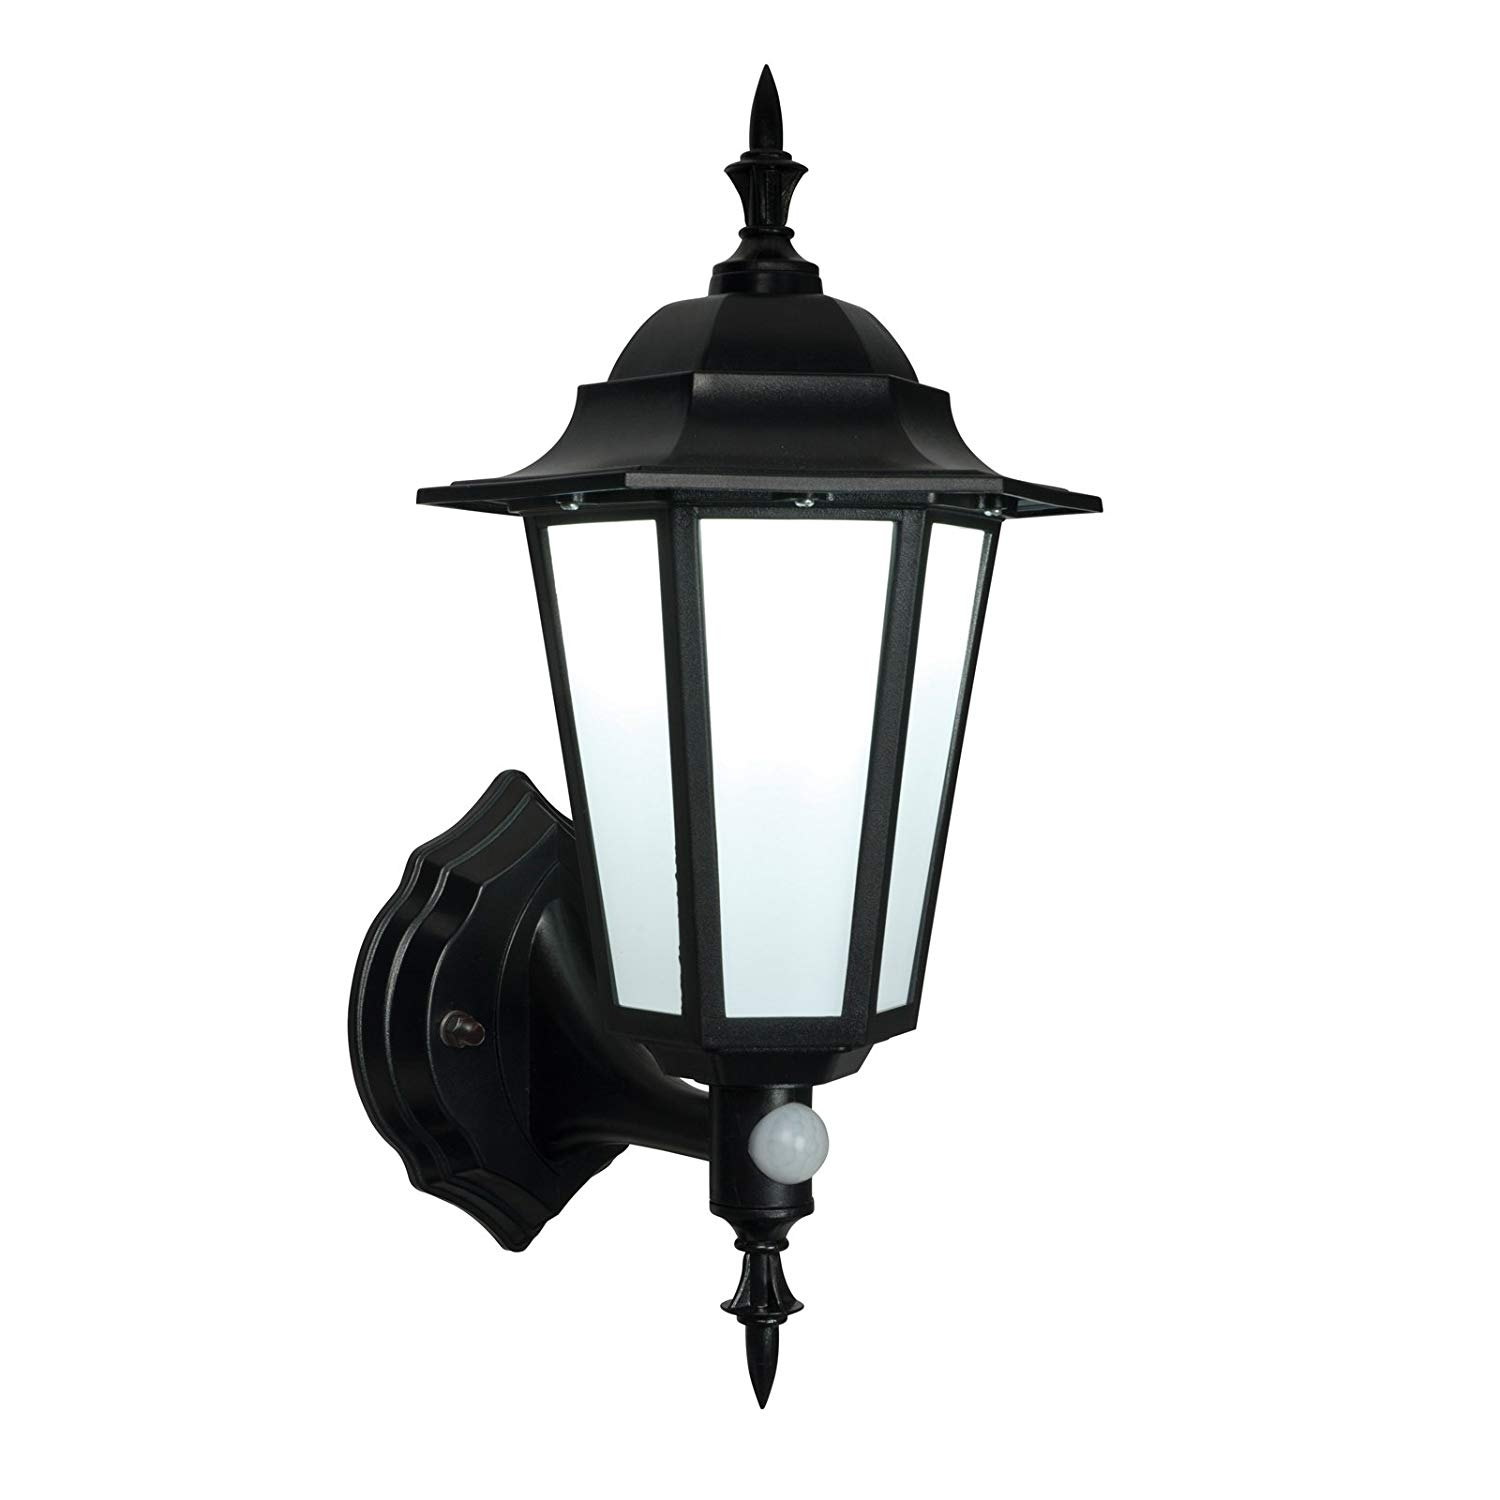 Saxby Evesham 7W Black Traditional Outdoor Garden Security Photocell with regard to Outdoor Pir Lanterns (Image 18 of 20)